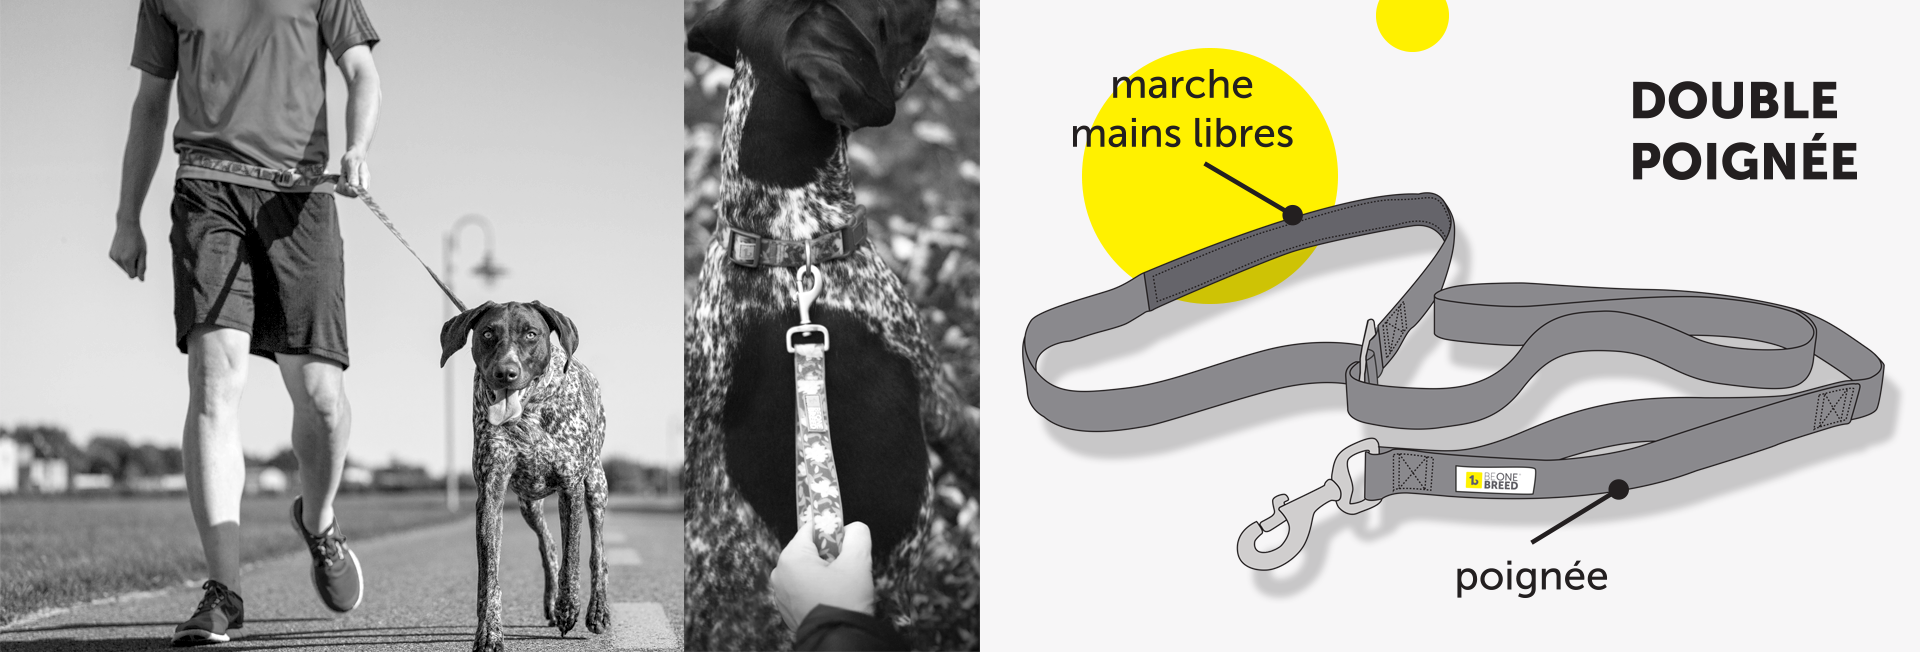 double-handle-lead-for-dogs-french